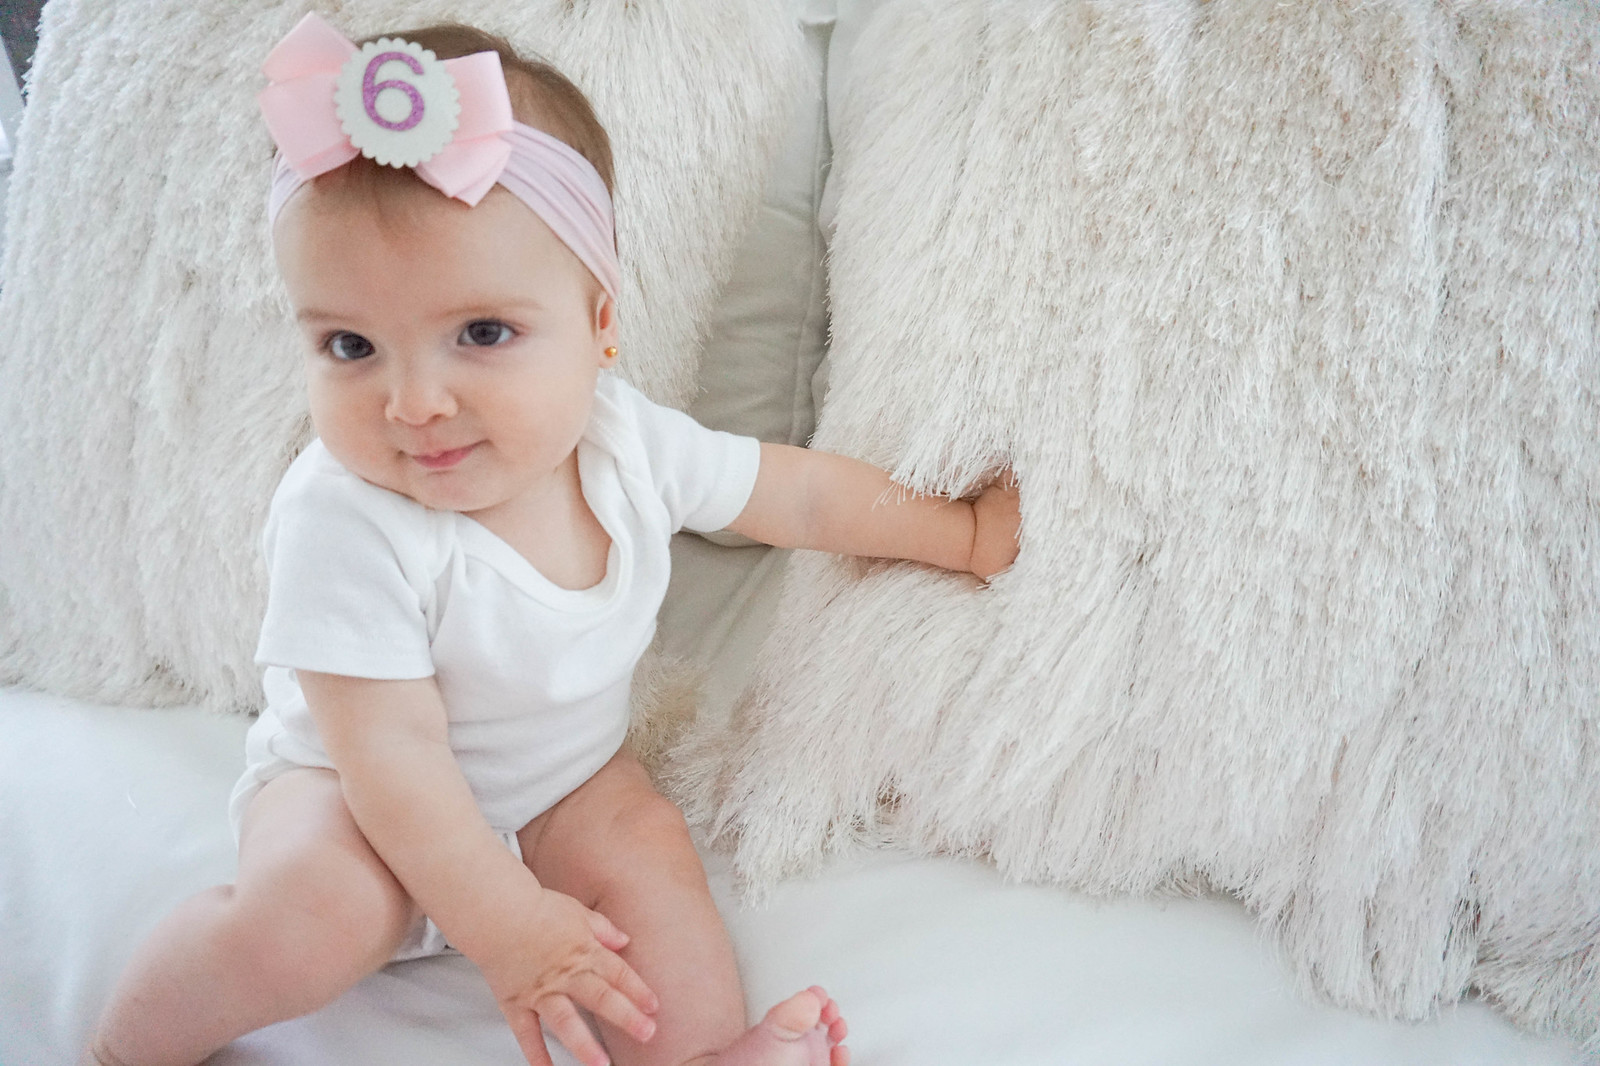 6 month old baby routine - gen y girl